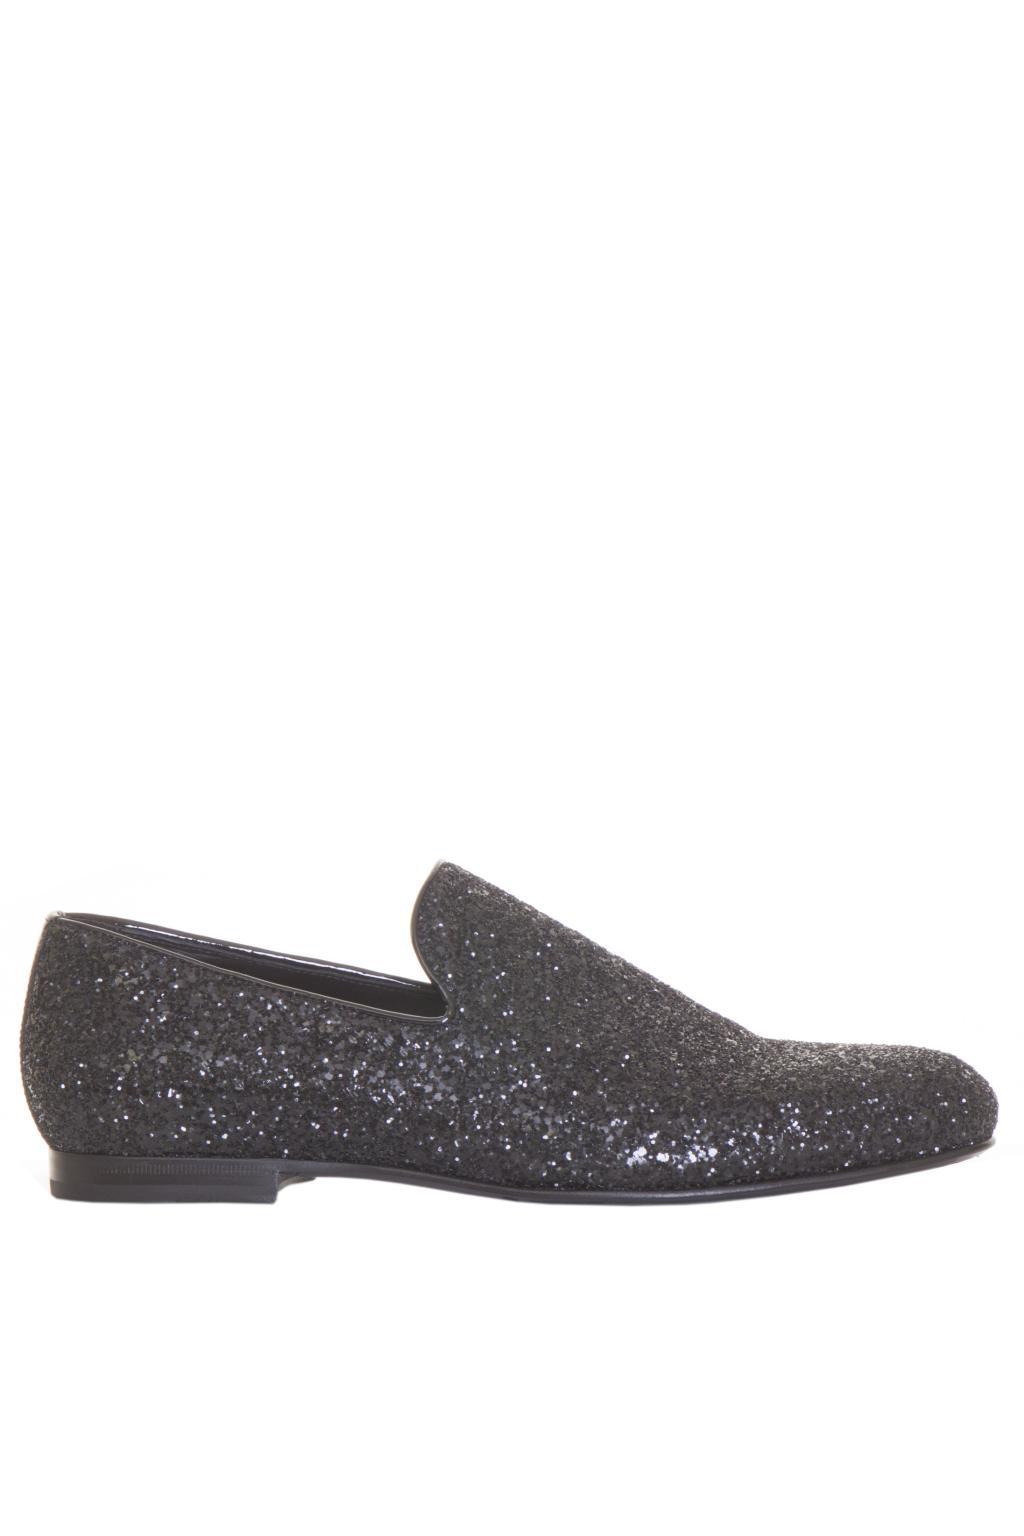 Jimmy choo Suede Studded Sloane Loafers